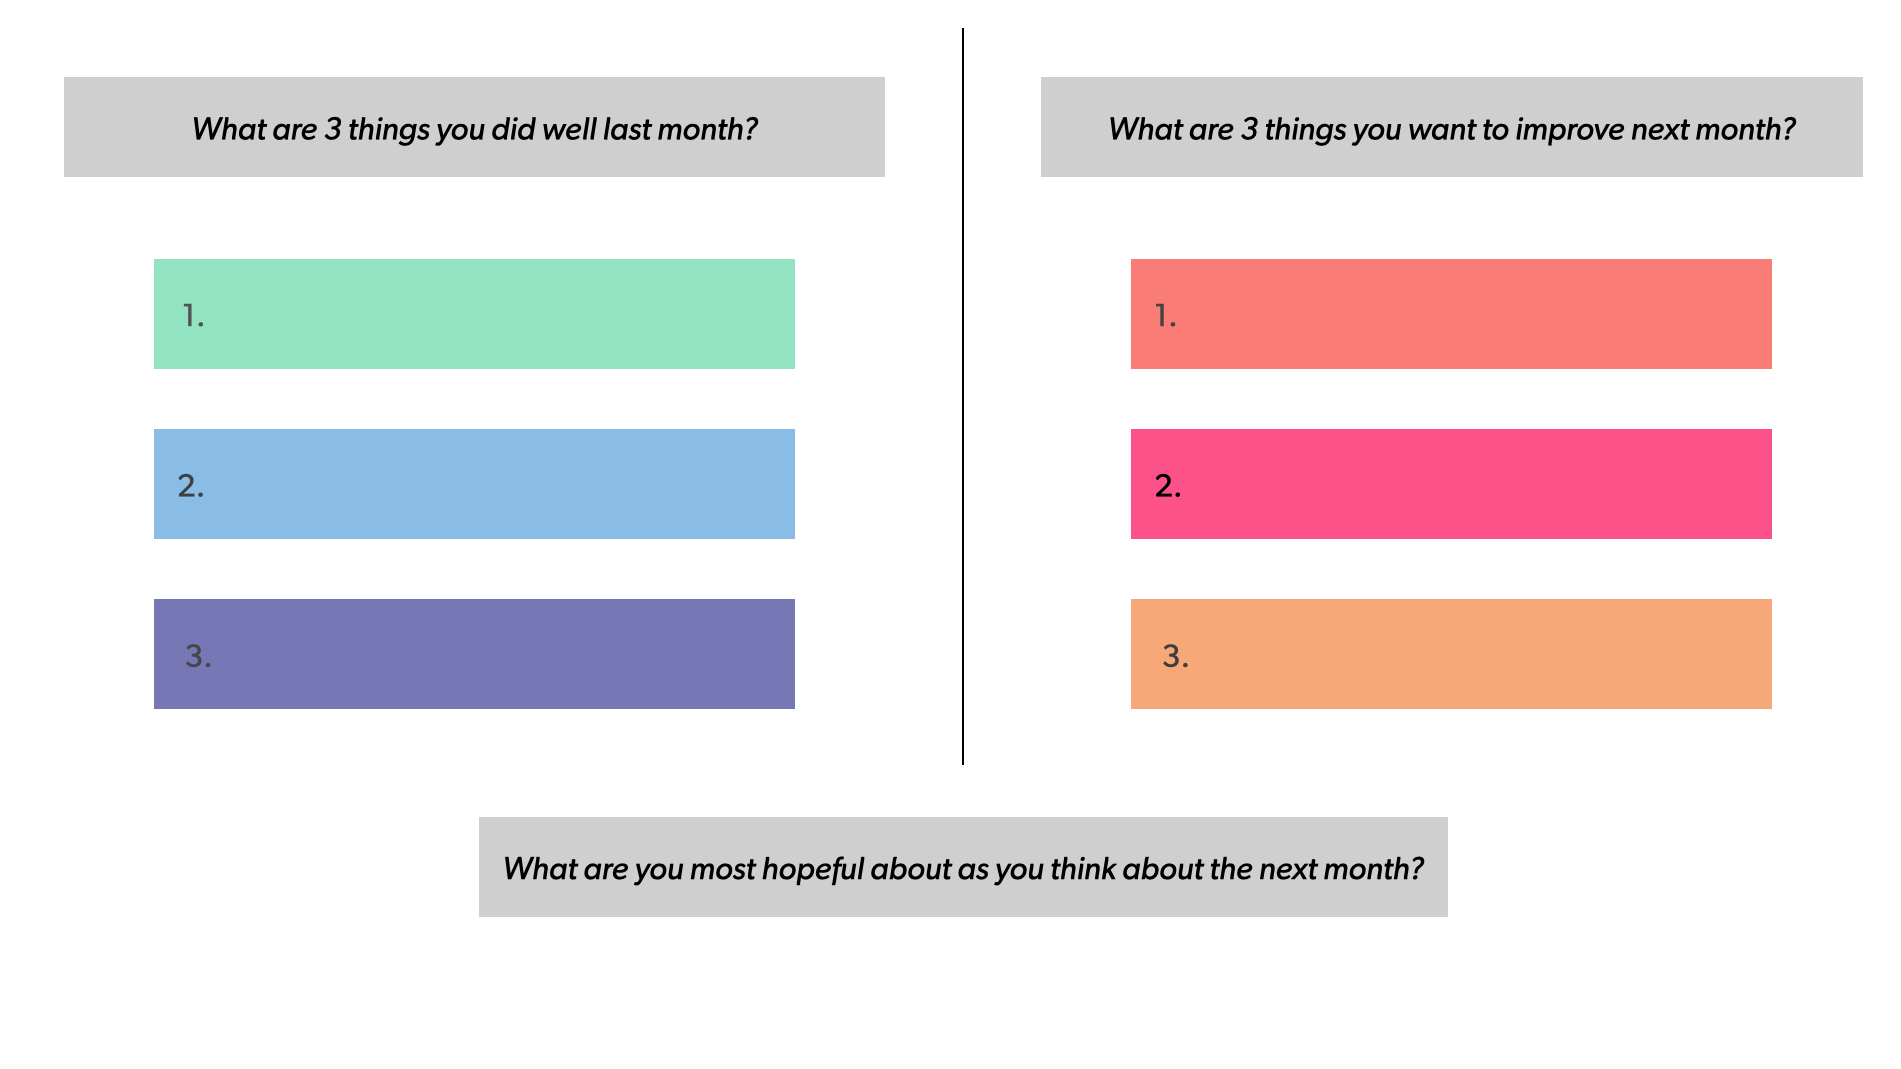 Template for 3 things you did well last month, 3 things to improve next month, and what your most hopeful about for next month.